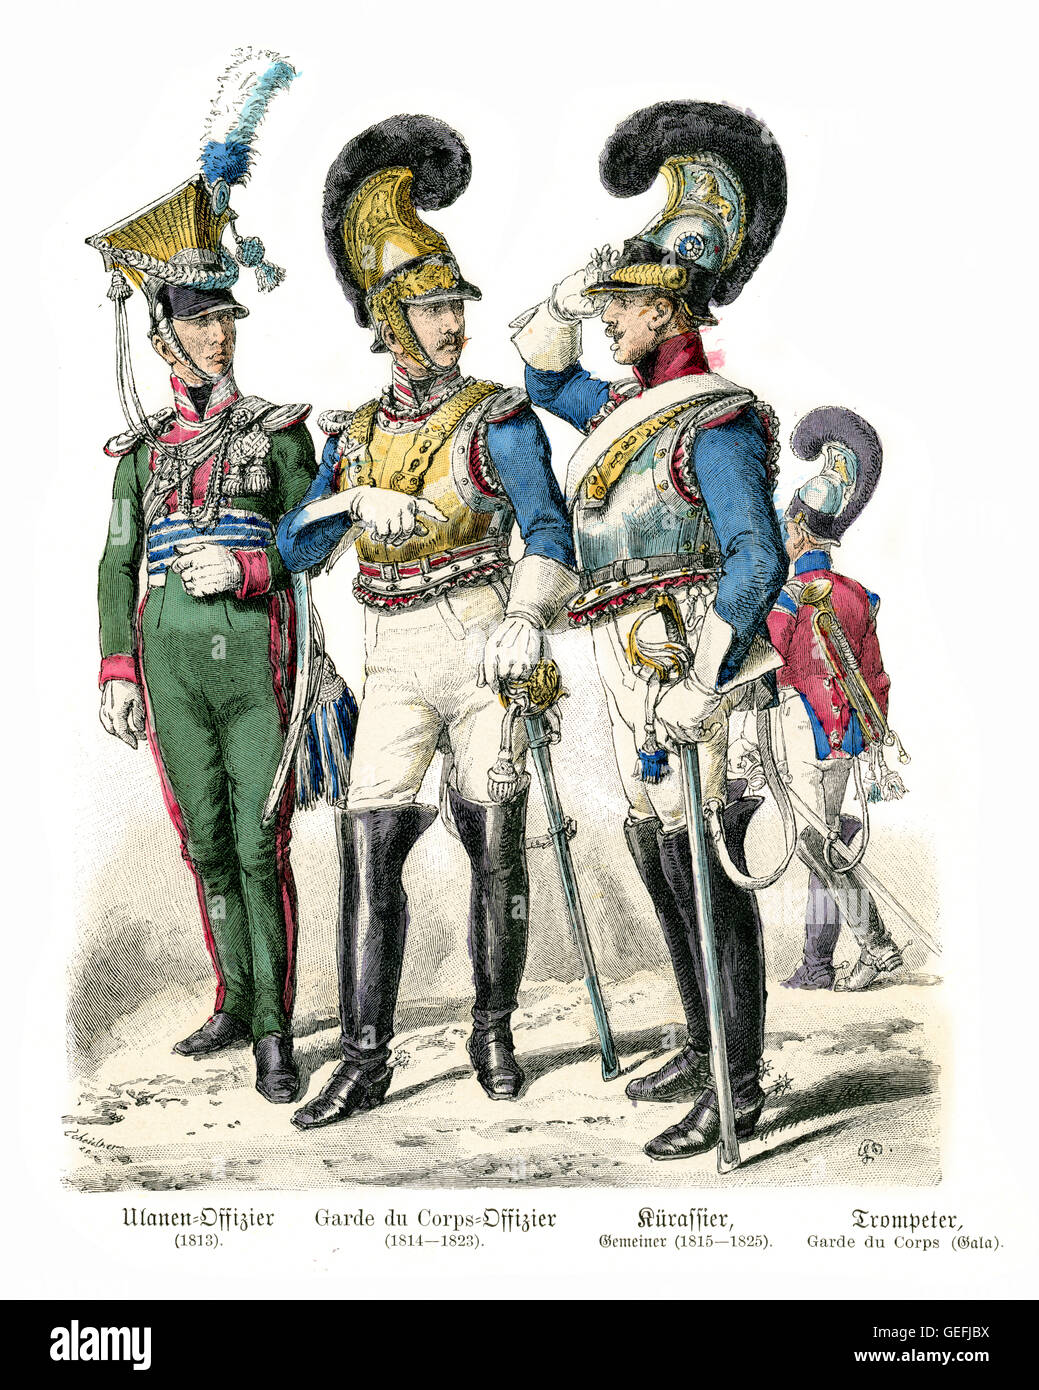 Military uniforms of Bavarian Soldiers early 19th Century. Cavalry Ulan Officer, Garde du Corps officer, Cuirassier - Stock Image